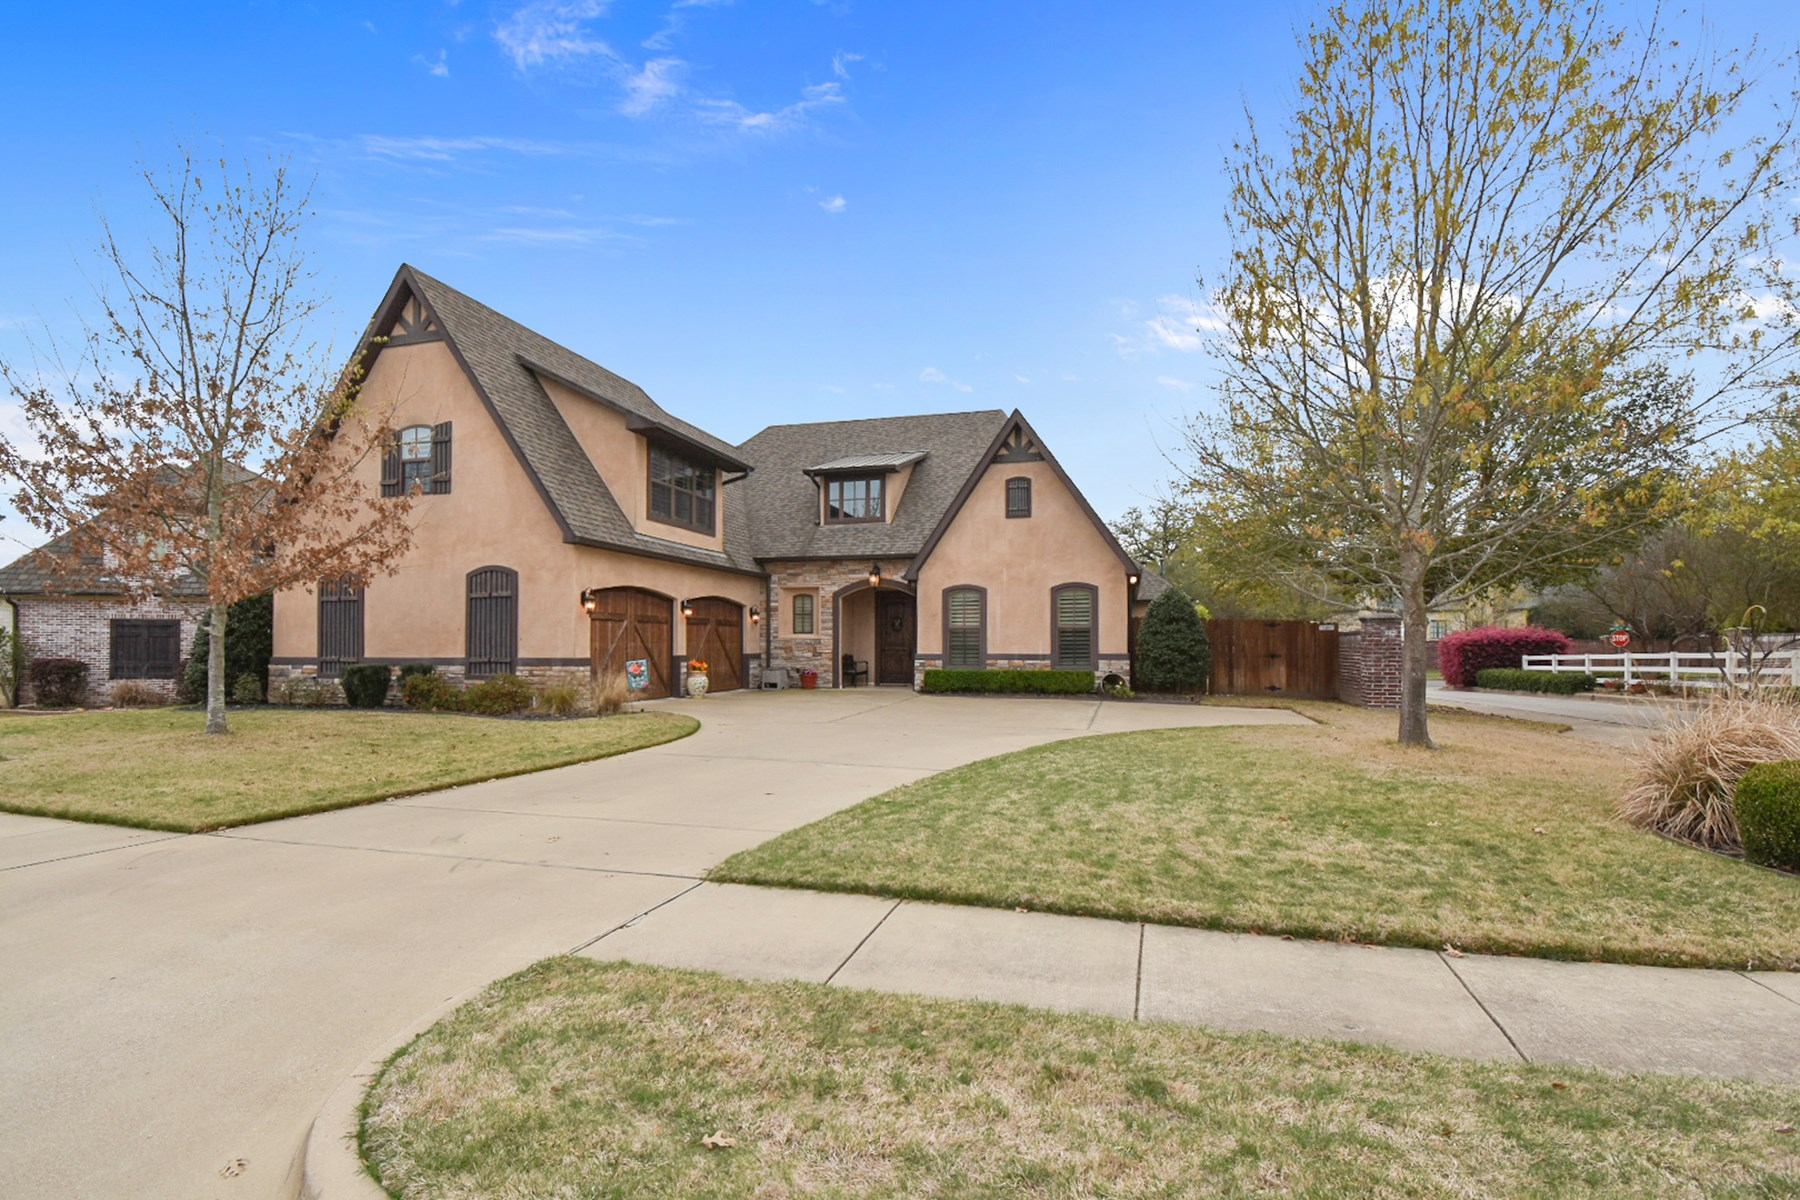 STUNNING 4 BEDROOM 3 BATH HOME IN SOUTH TYLER FOR SALE